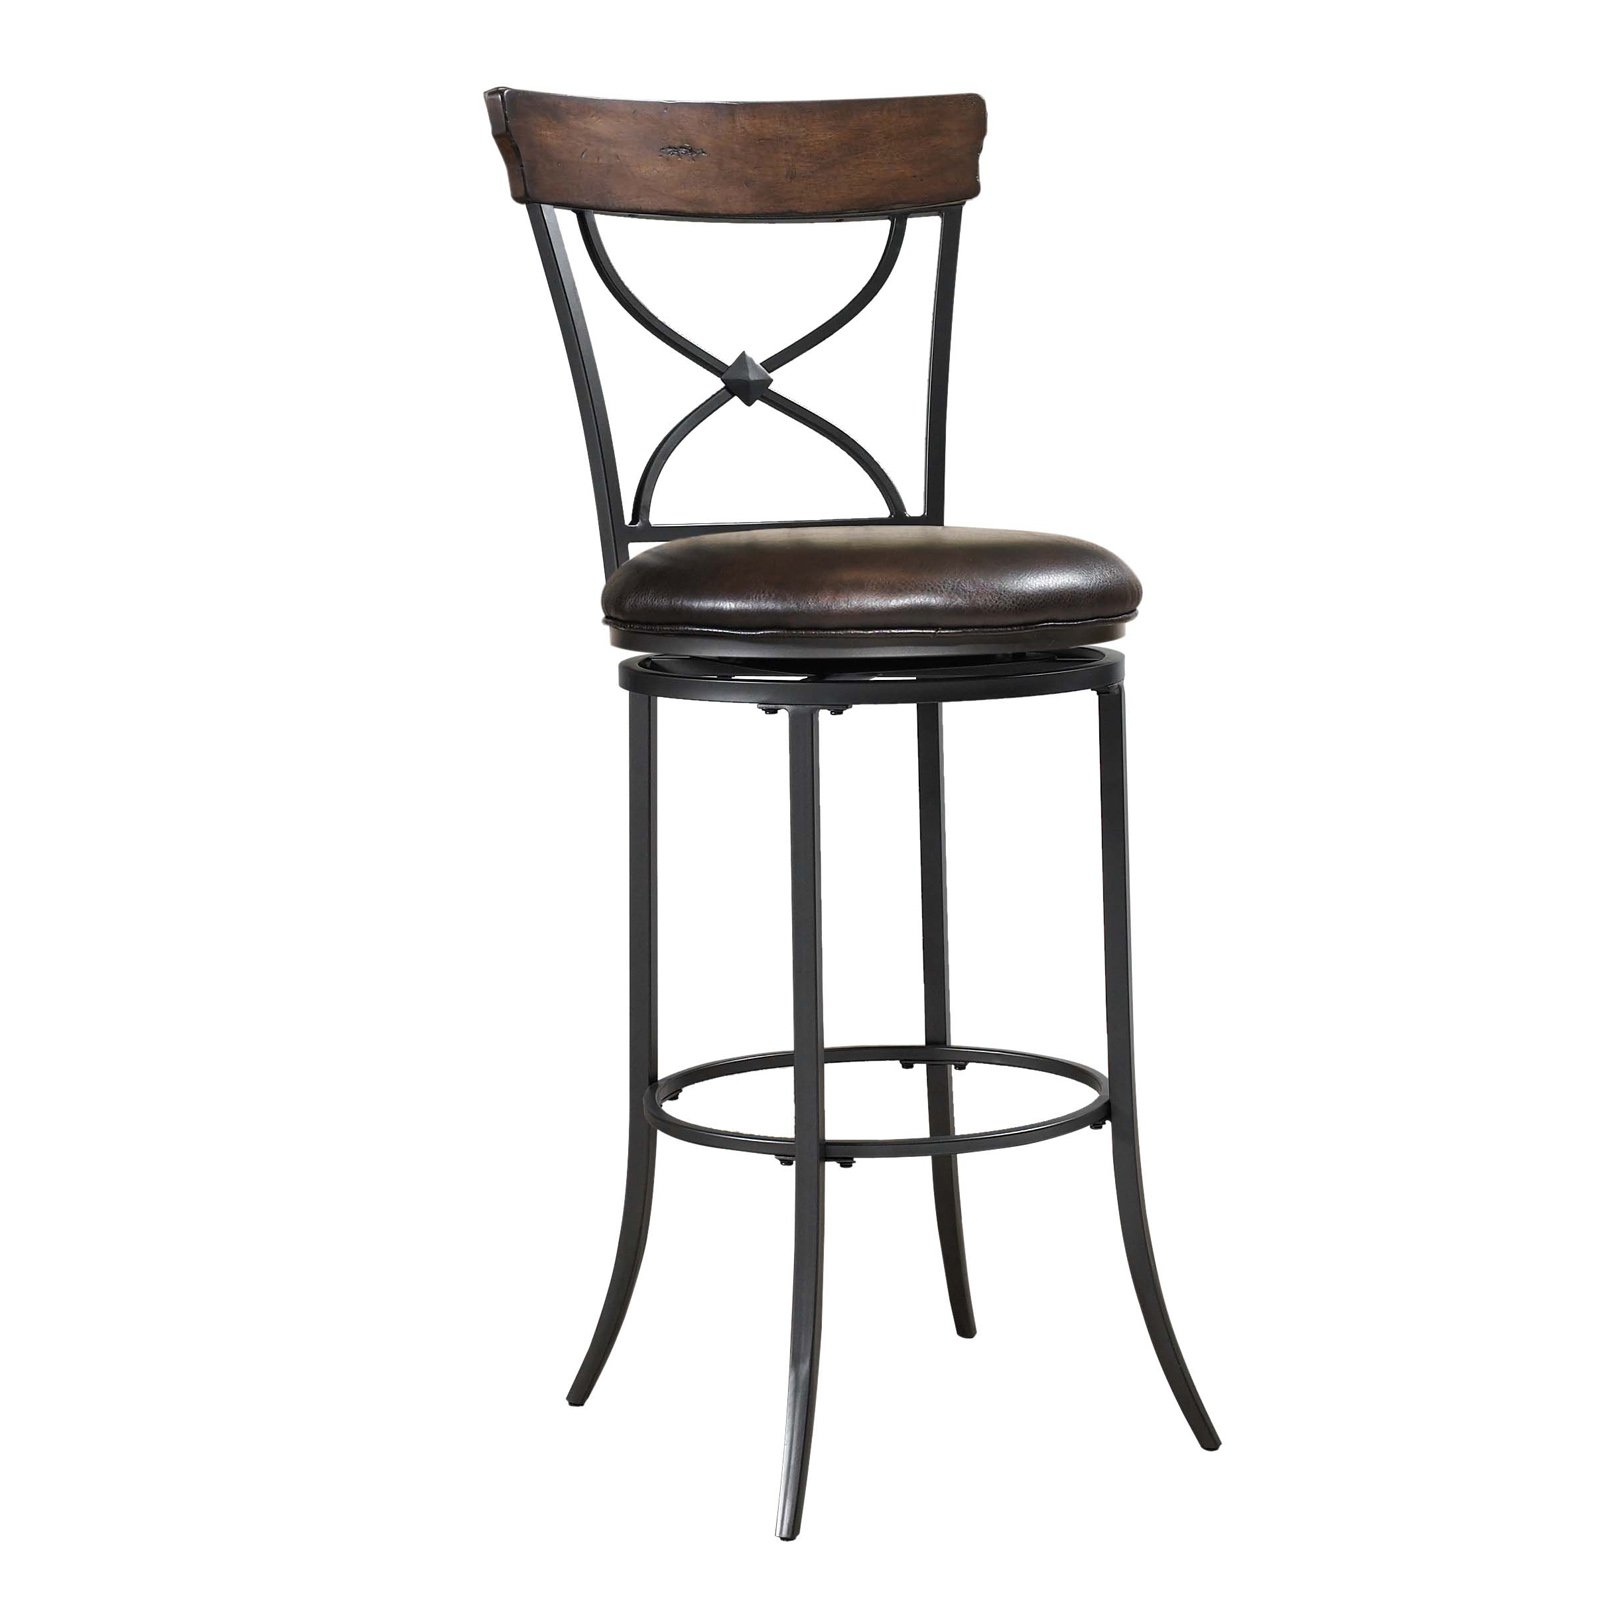 metal bar stools seagrass bar stools round back bar stools - Metal Bar Stools With Backs